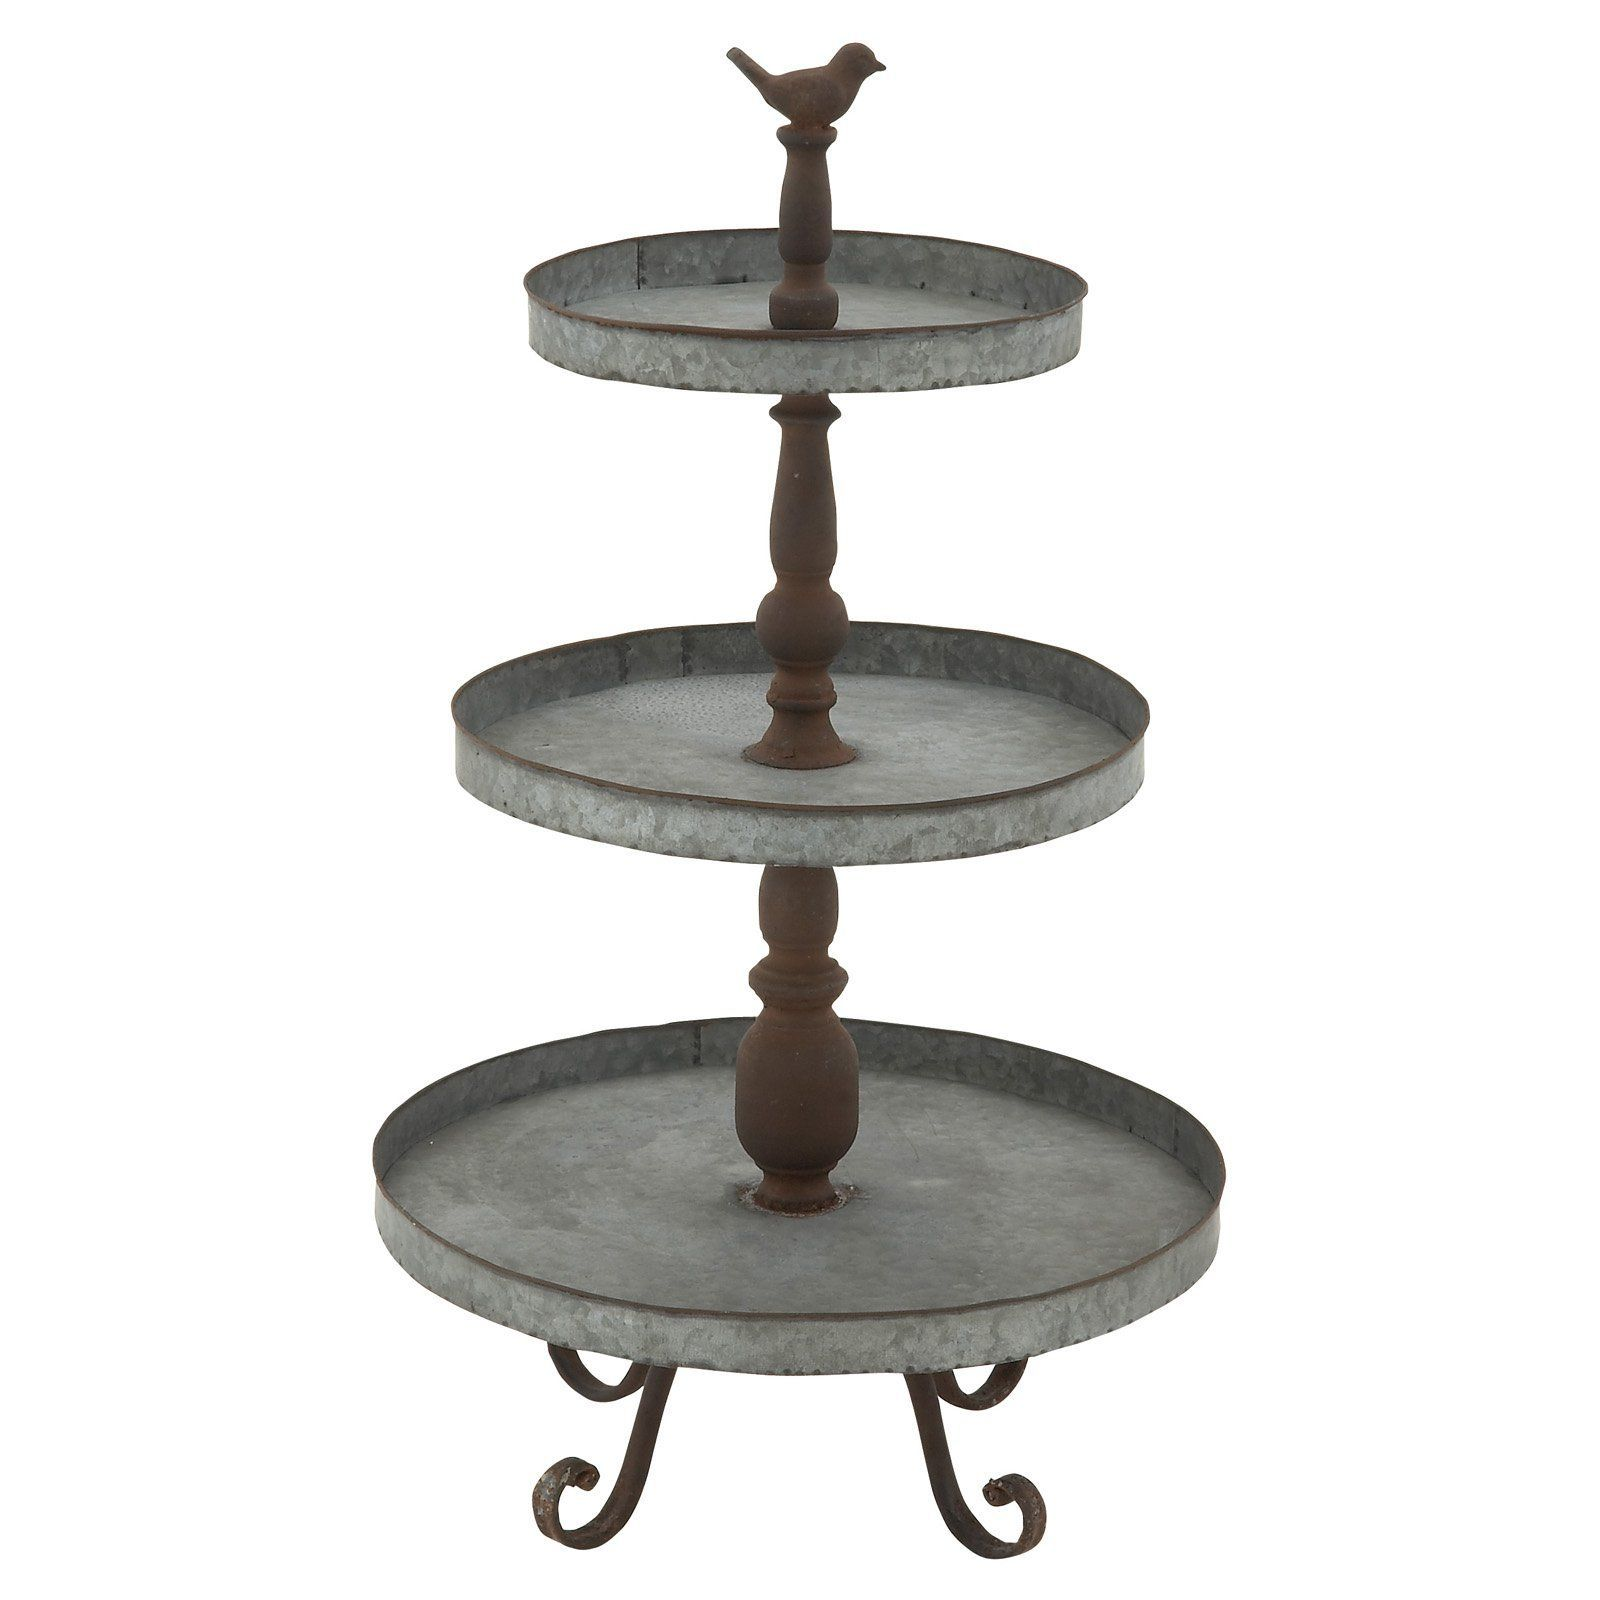 Decmode 3 tiered metal tray stand with bird 54347 with